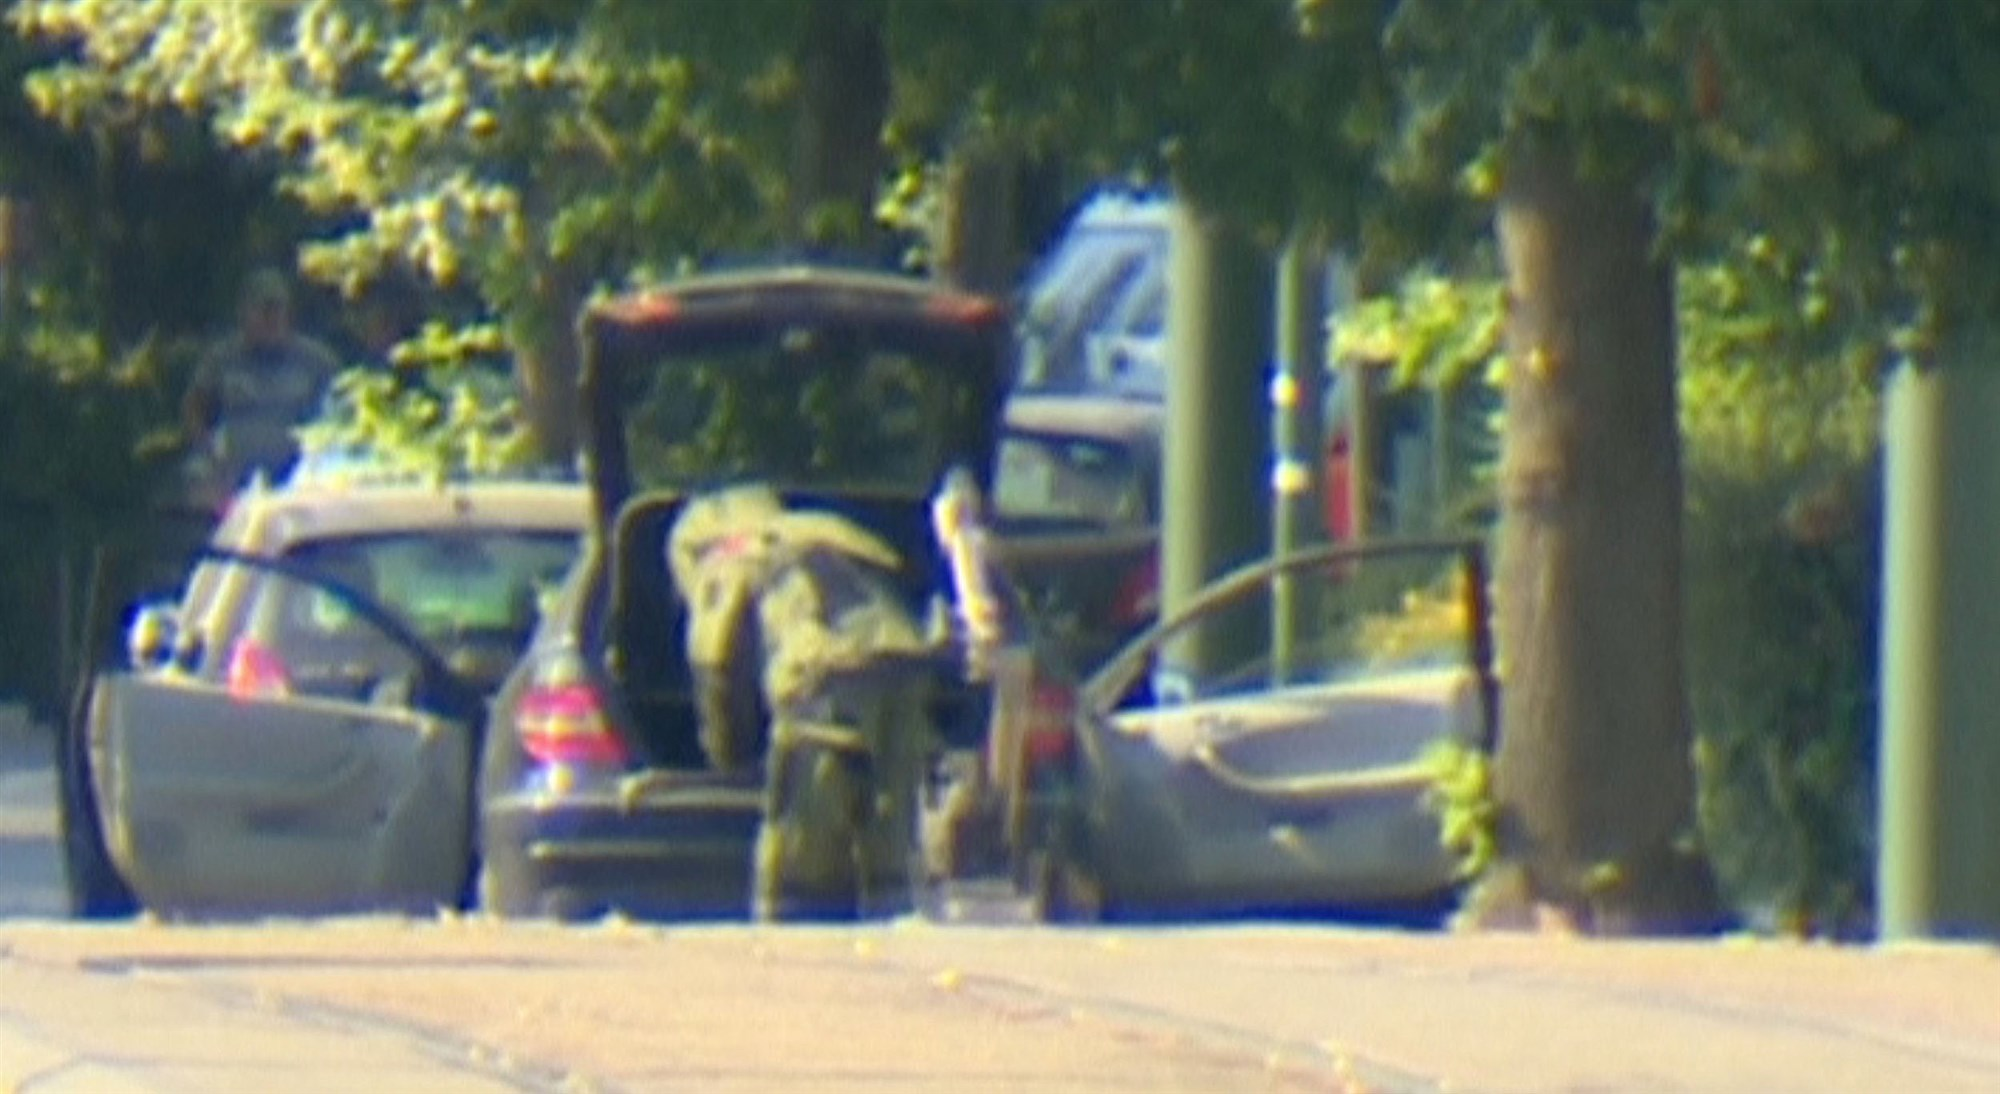 180706-brussels-bomb-disposal-mc-14042_48e60b50fe6c12305117e44cdd7c5c9f.fit-2000w